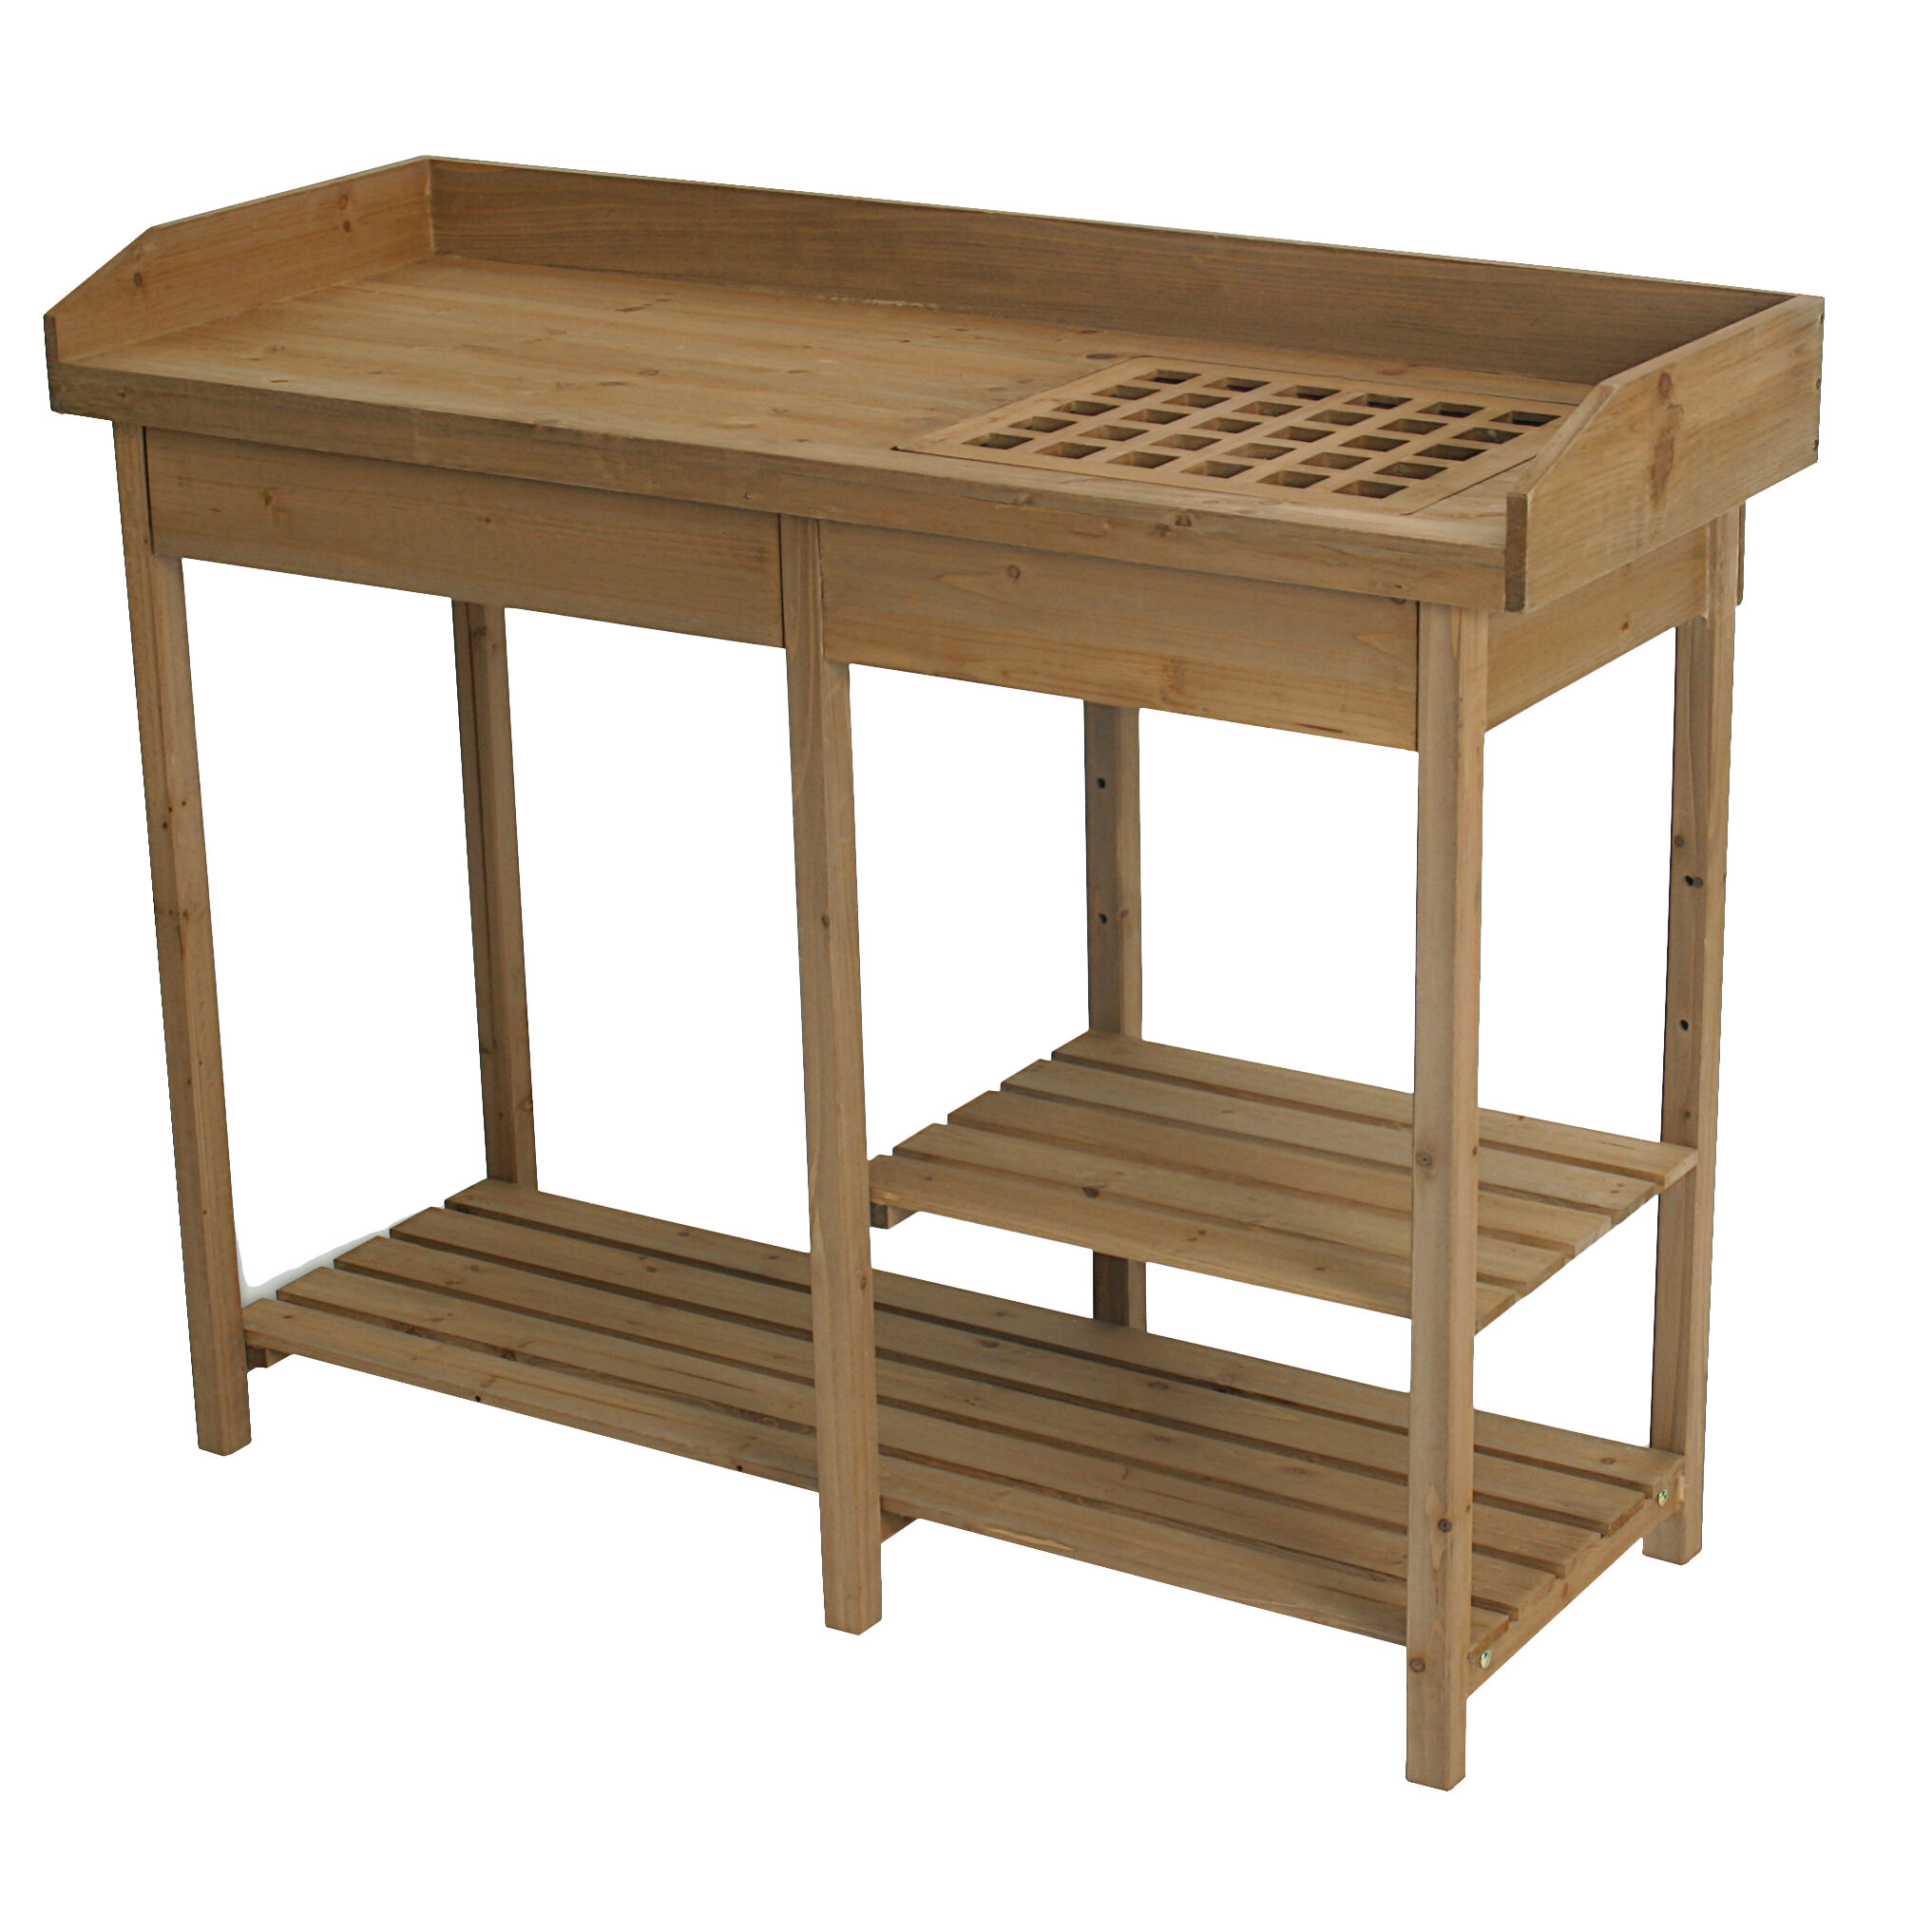 Superieur Algreen Potting Bench Table U0026 Reviews | Wayfair